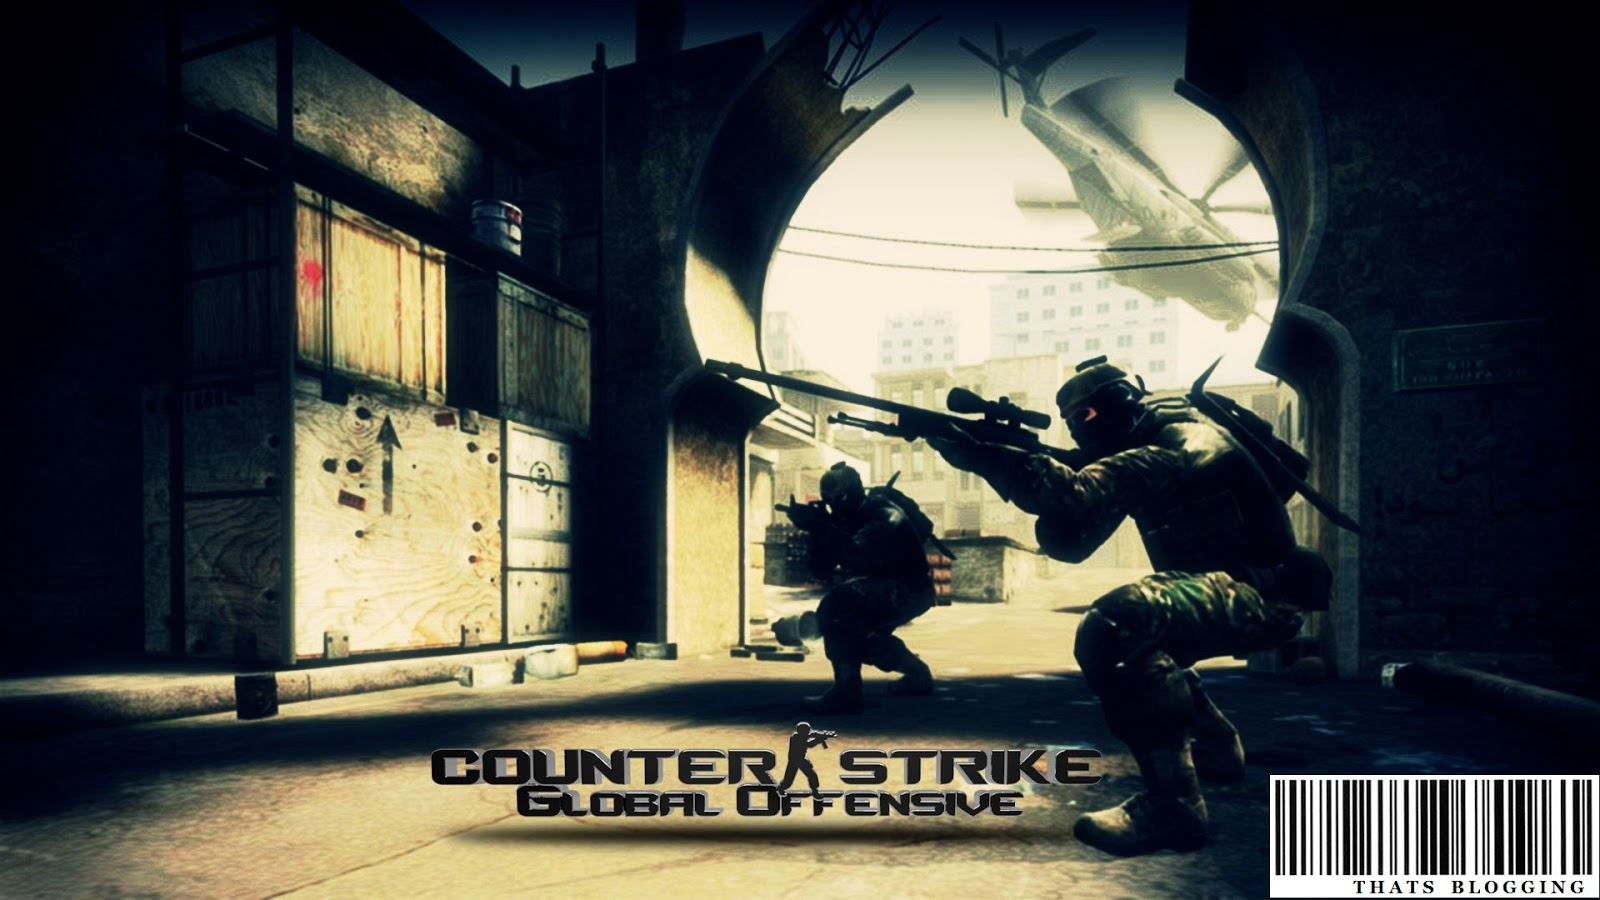 Download Counter Strike 1.6 High Definition Wallpapers